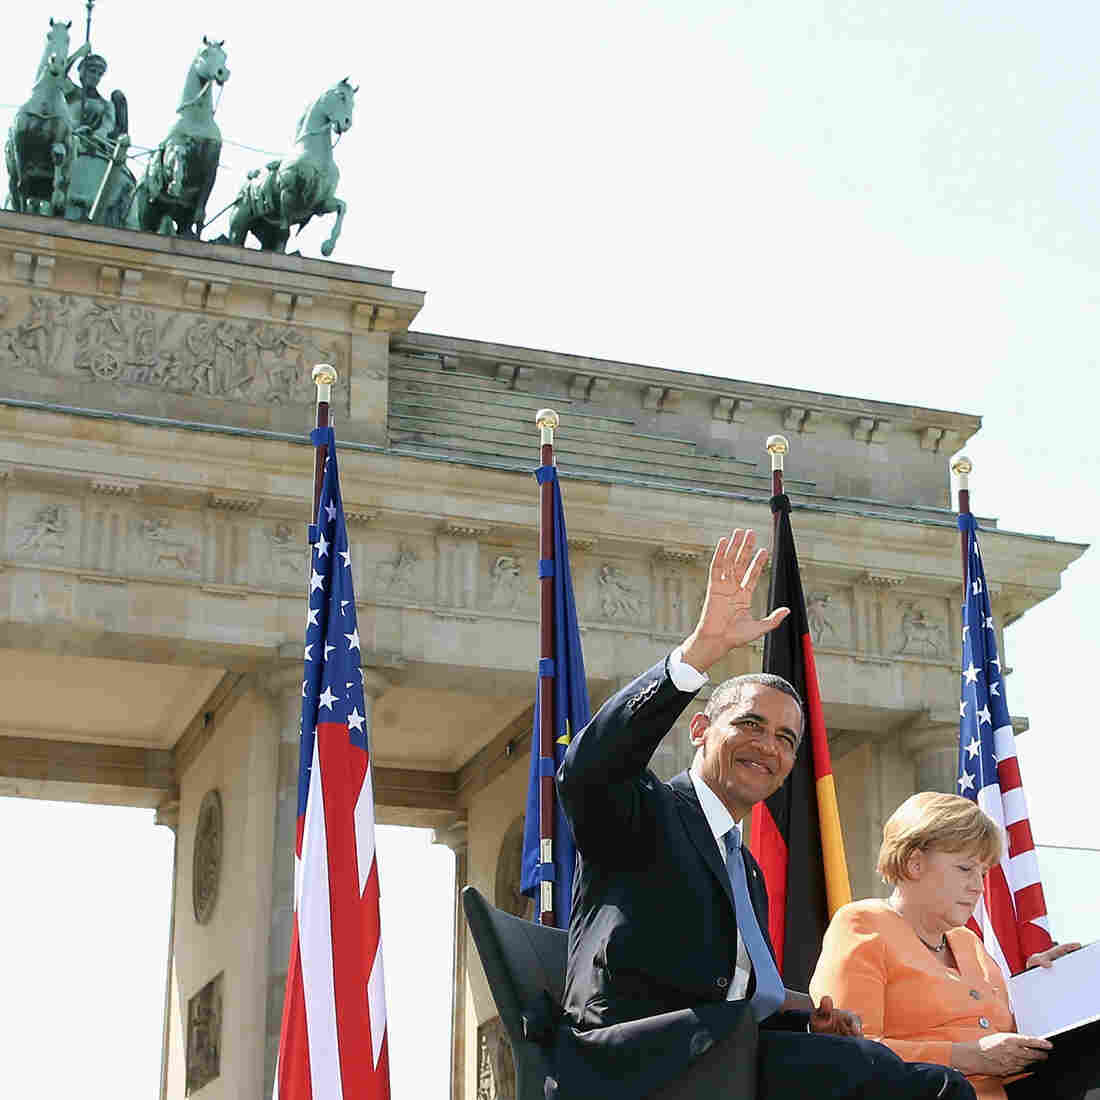 President Obama and German Chancellor Angela Merkel arrive to speak at the Brandenburg Gate in Berlin on Wednesday.